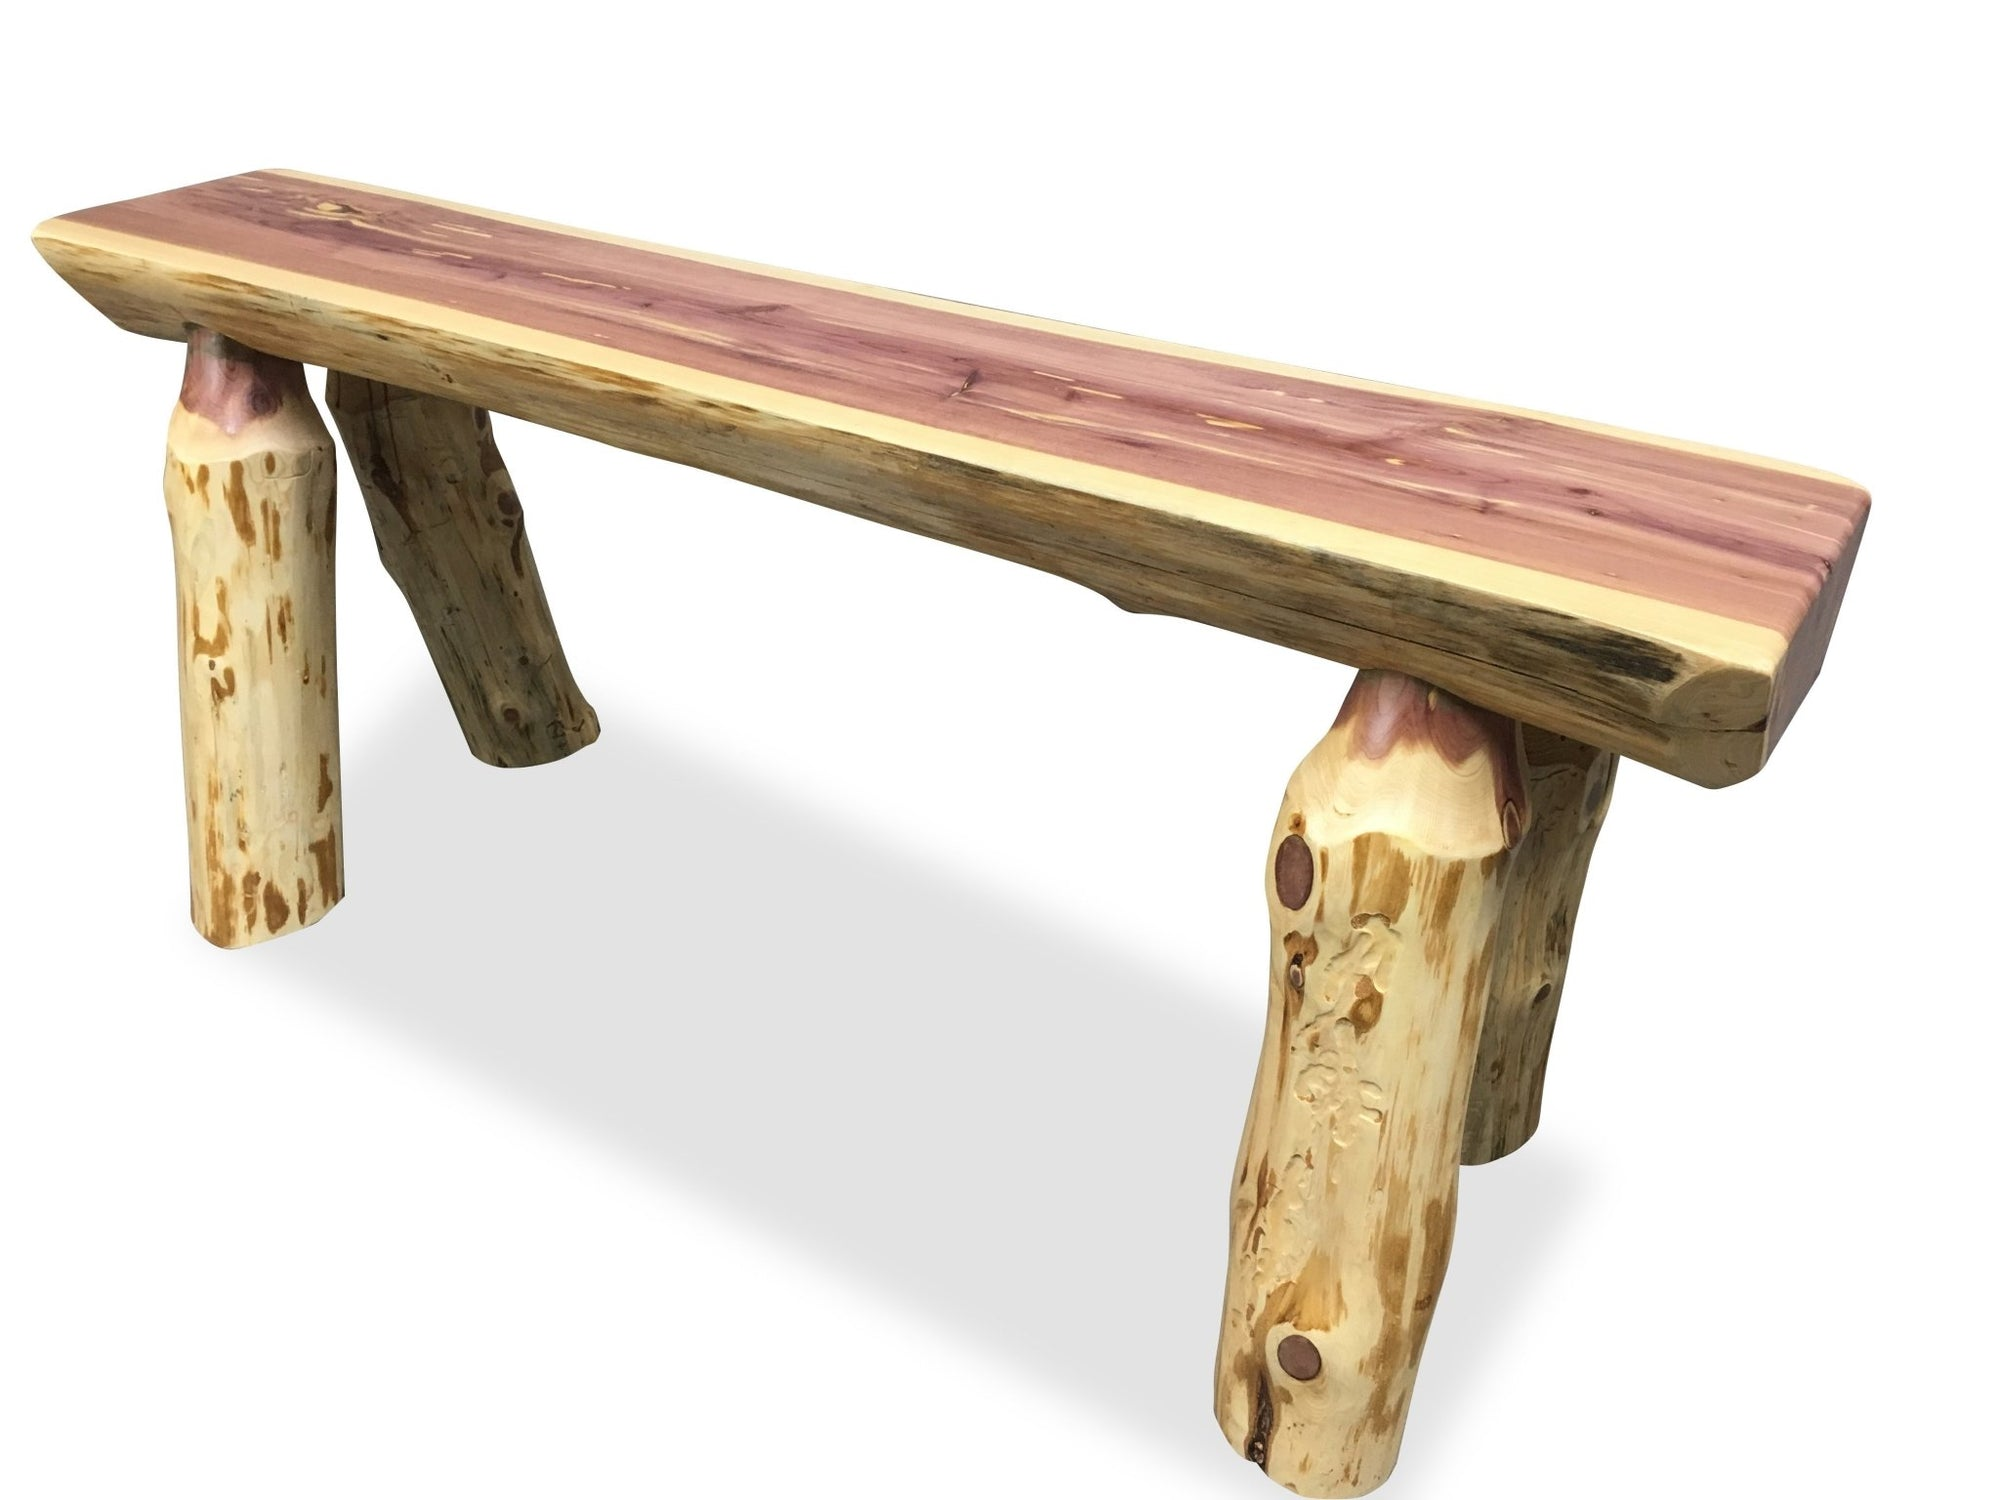 Knaughty Log Co - Knaughty Log Co - Half Log Live Edge Cedar Slab Bench